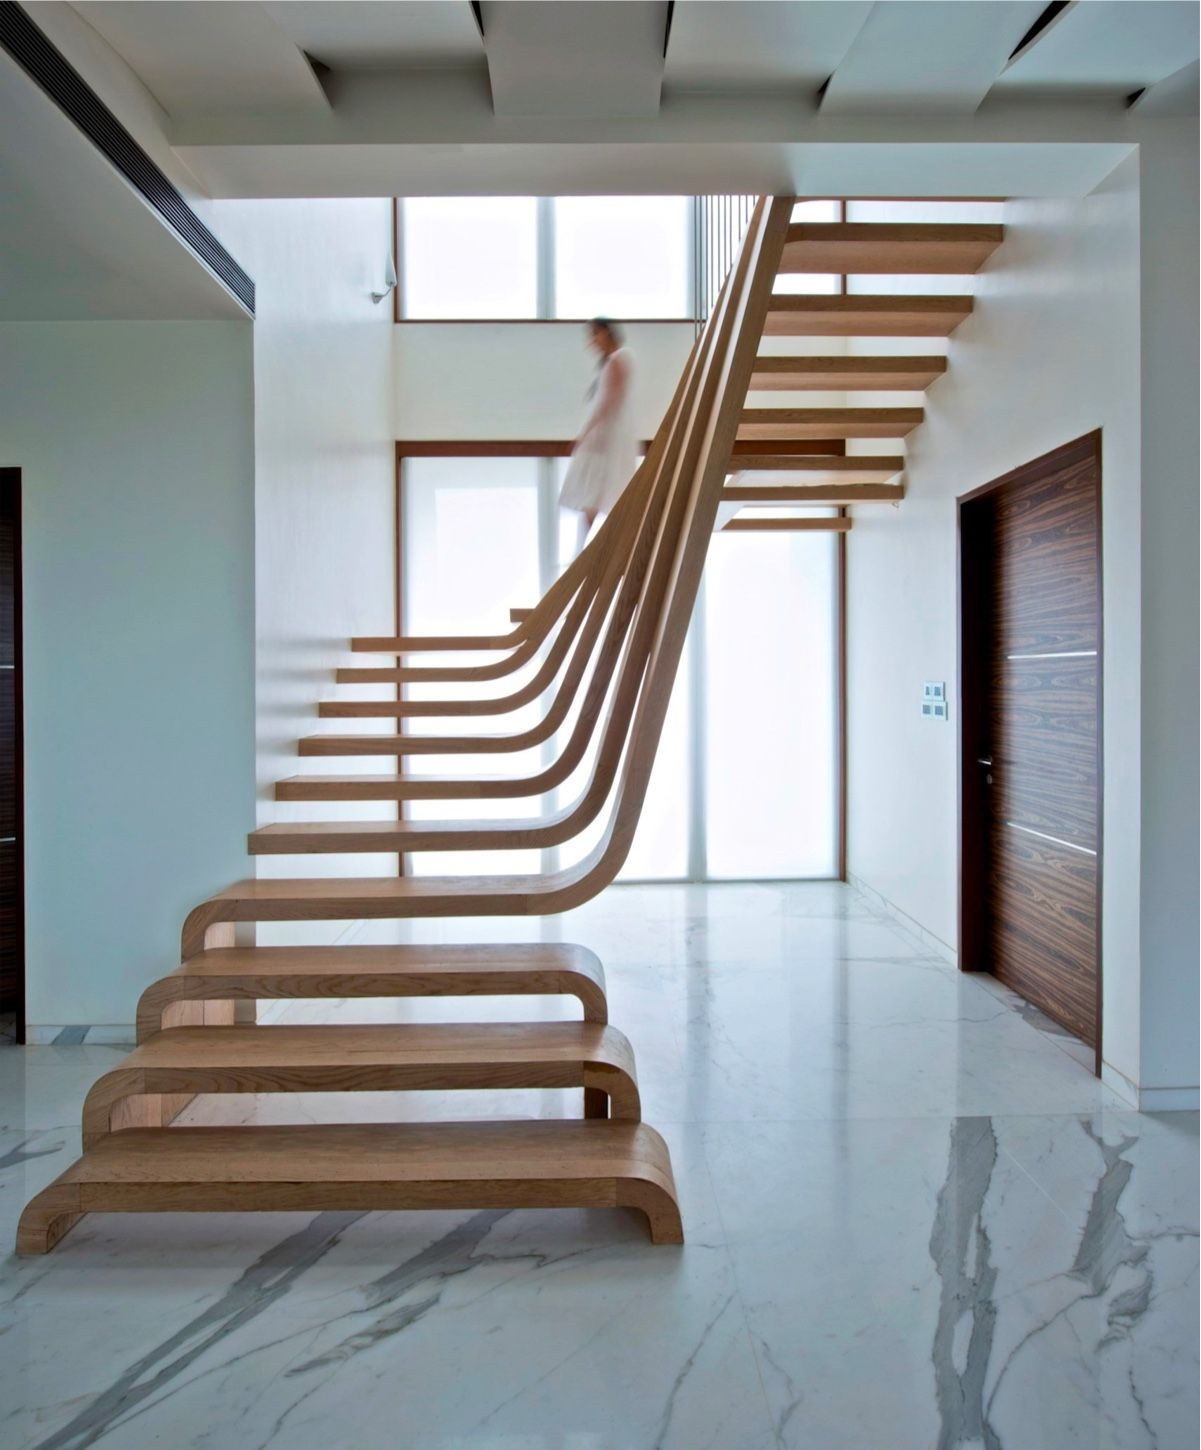 Best Homedesigning Via 25 Unique Staircase Designs To Take Center Stage In Your Home Interior 400 x 300